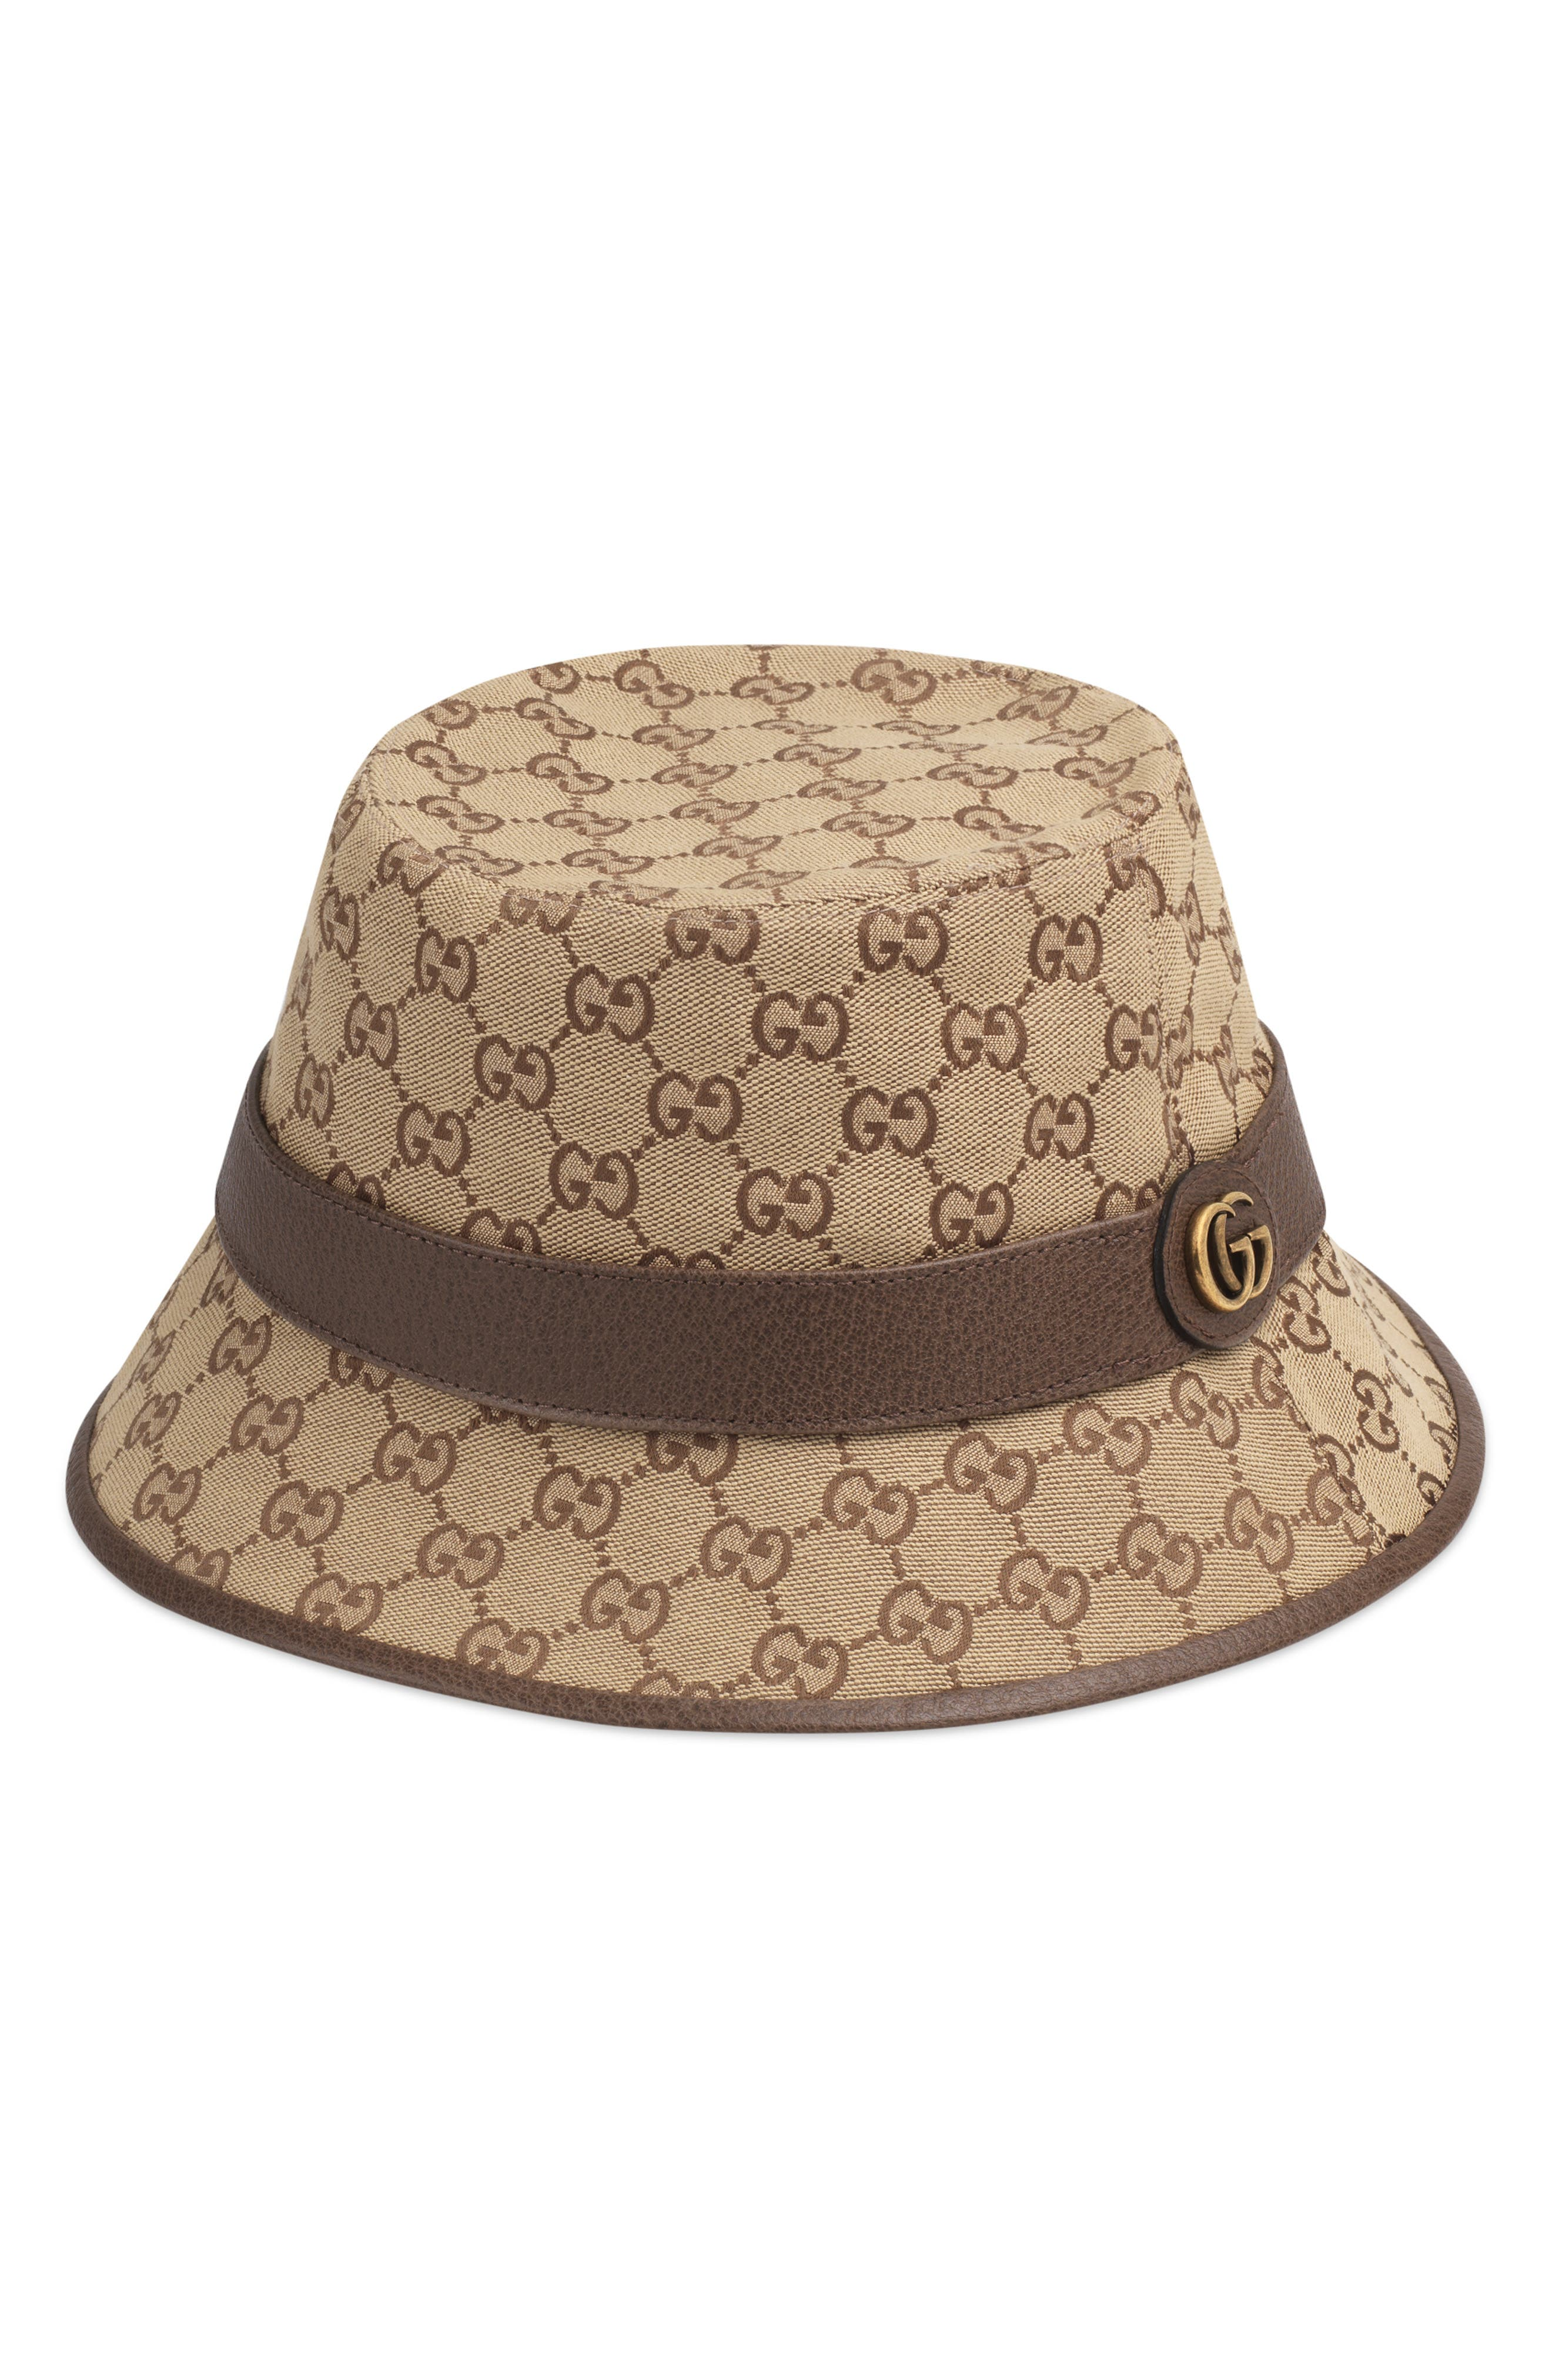 a8870e9e9ddc8 Men s Gucci Hats